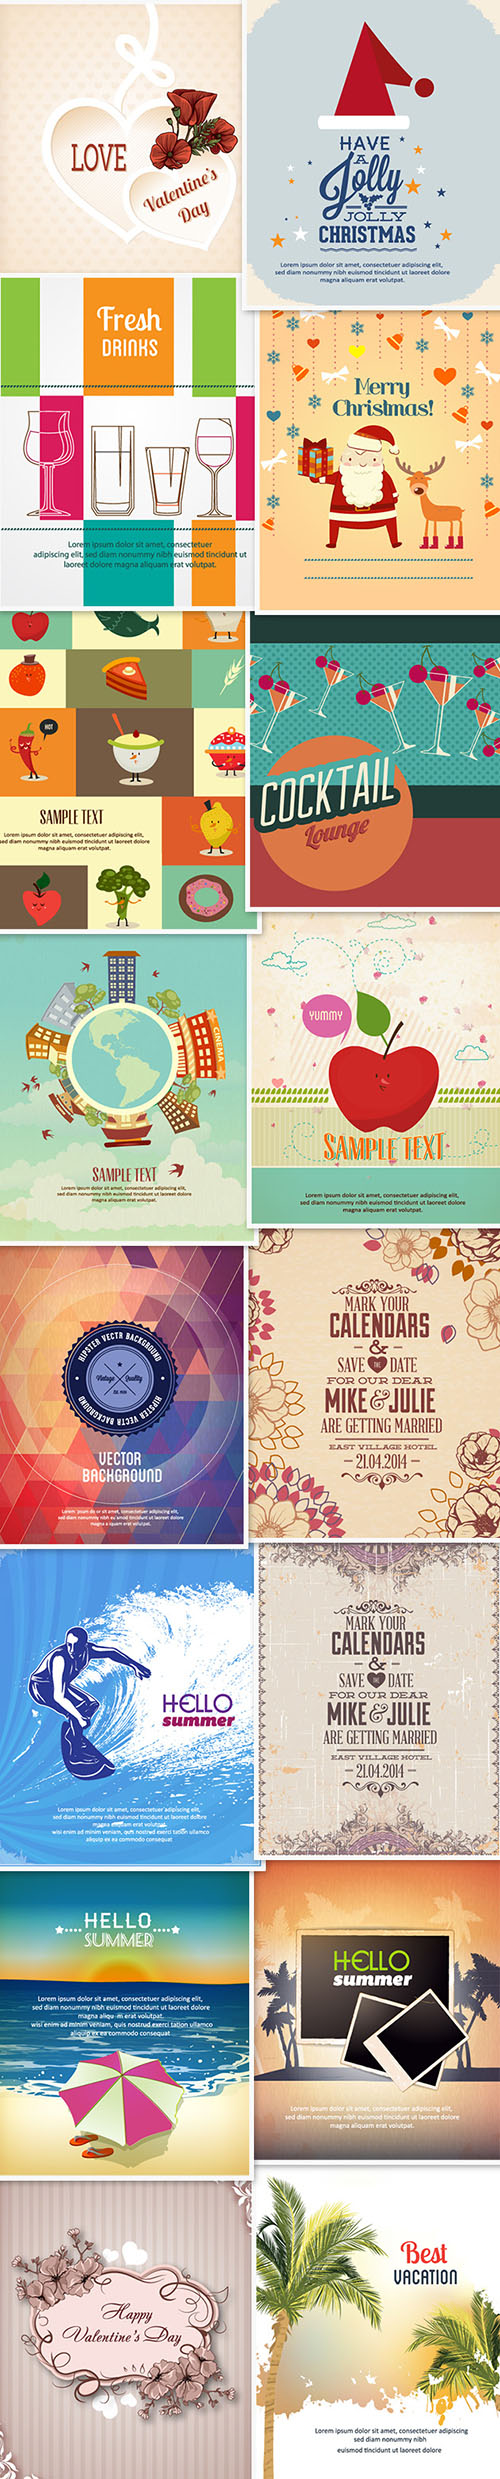 16 Vector Illustrations - Christmas, Valentines Day, Seasonal Holidays Posters